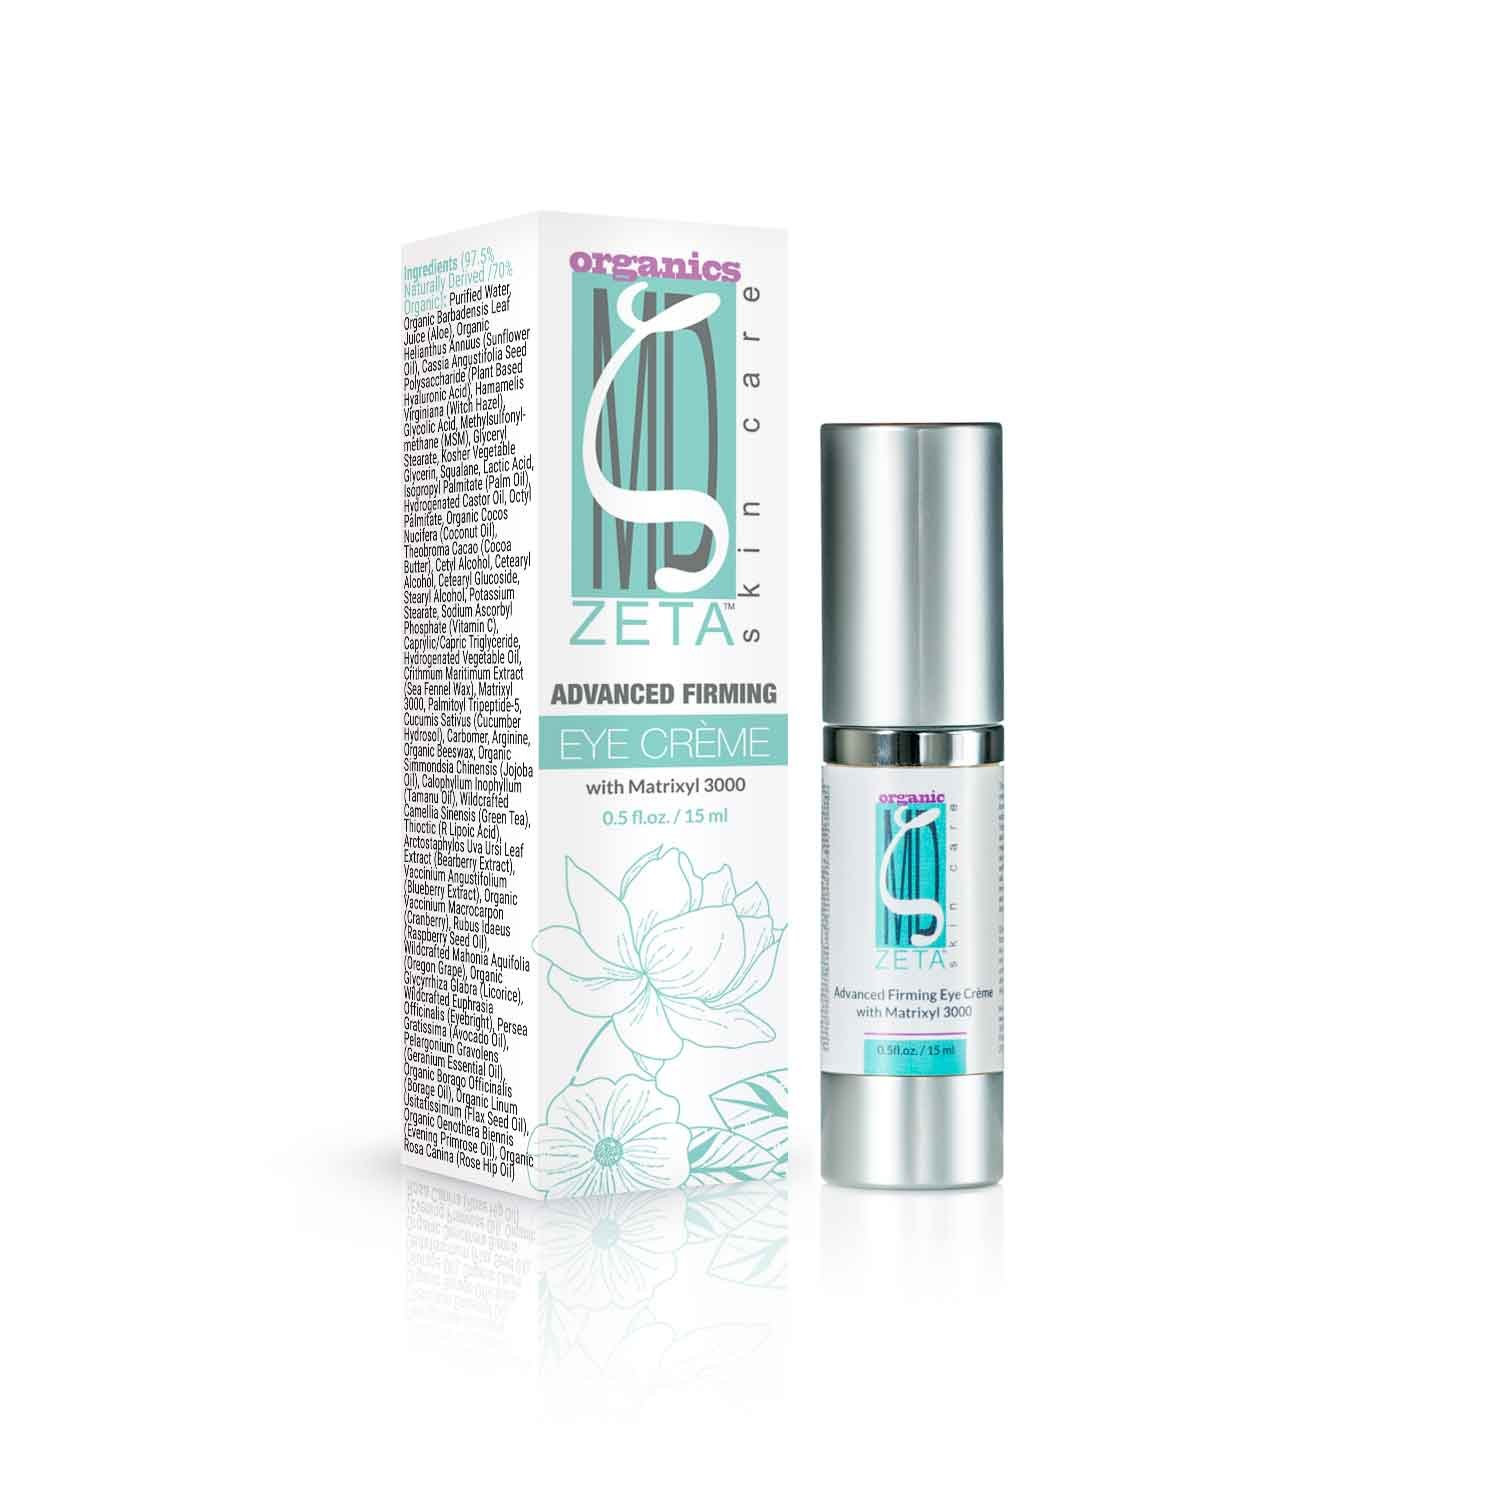 Pity, flaxx c anti aging facial bio elements